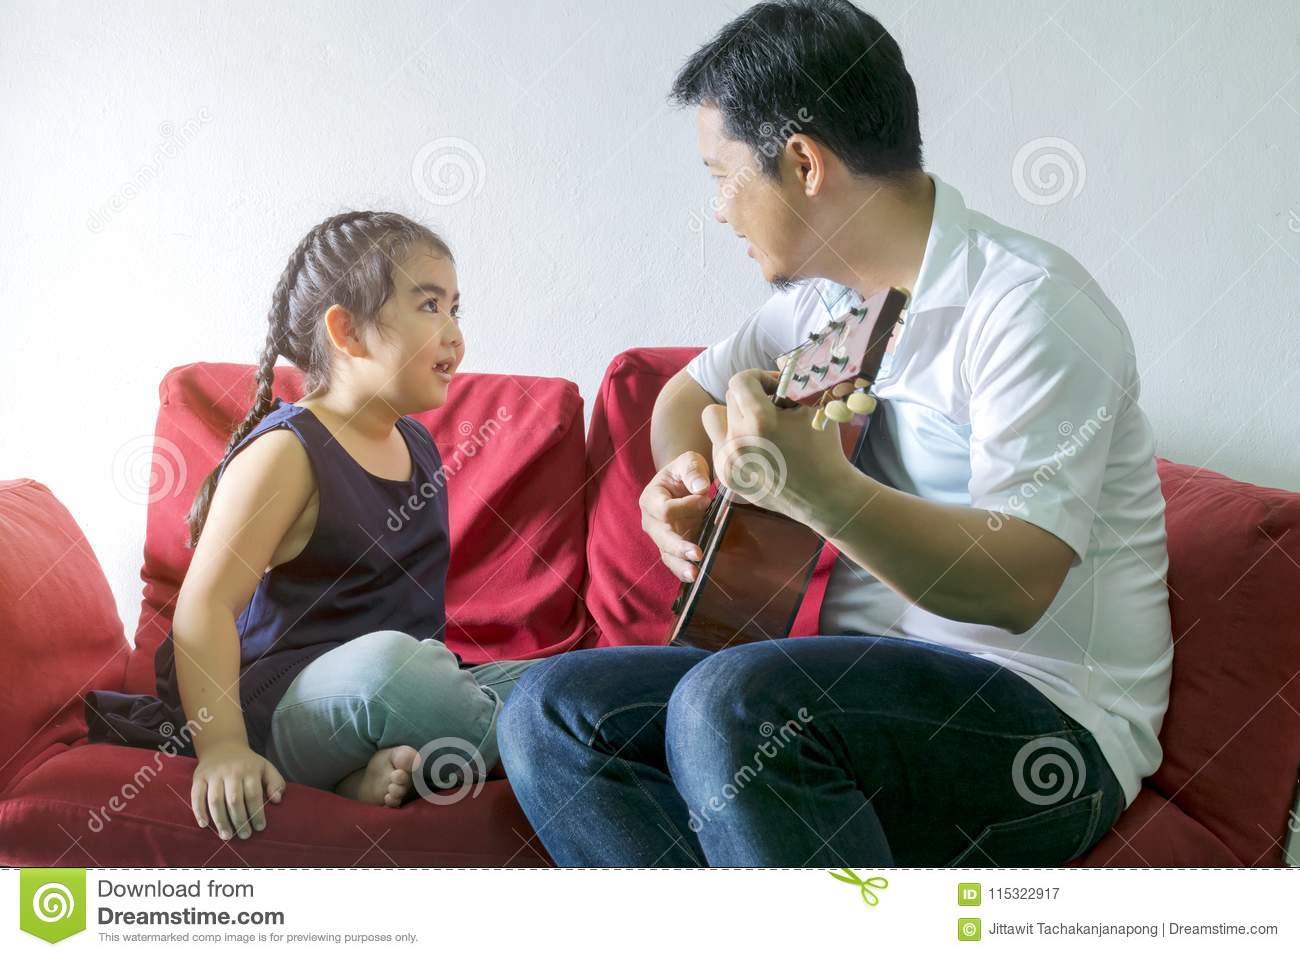 Dad playing guitar and a song with a girl.